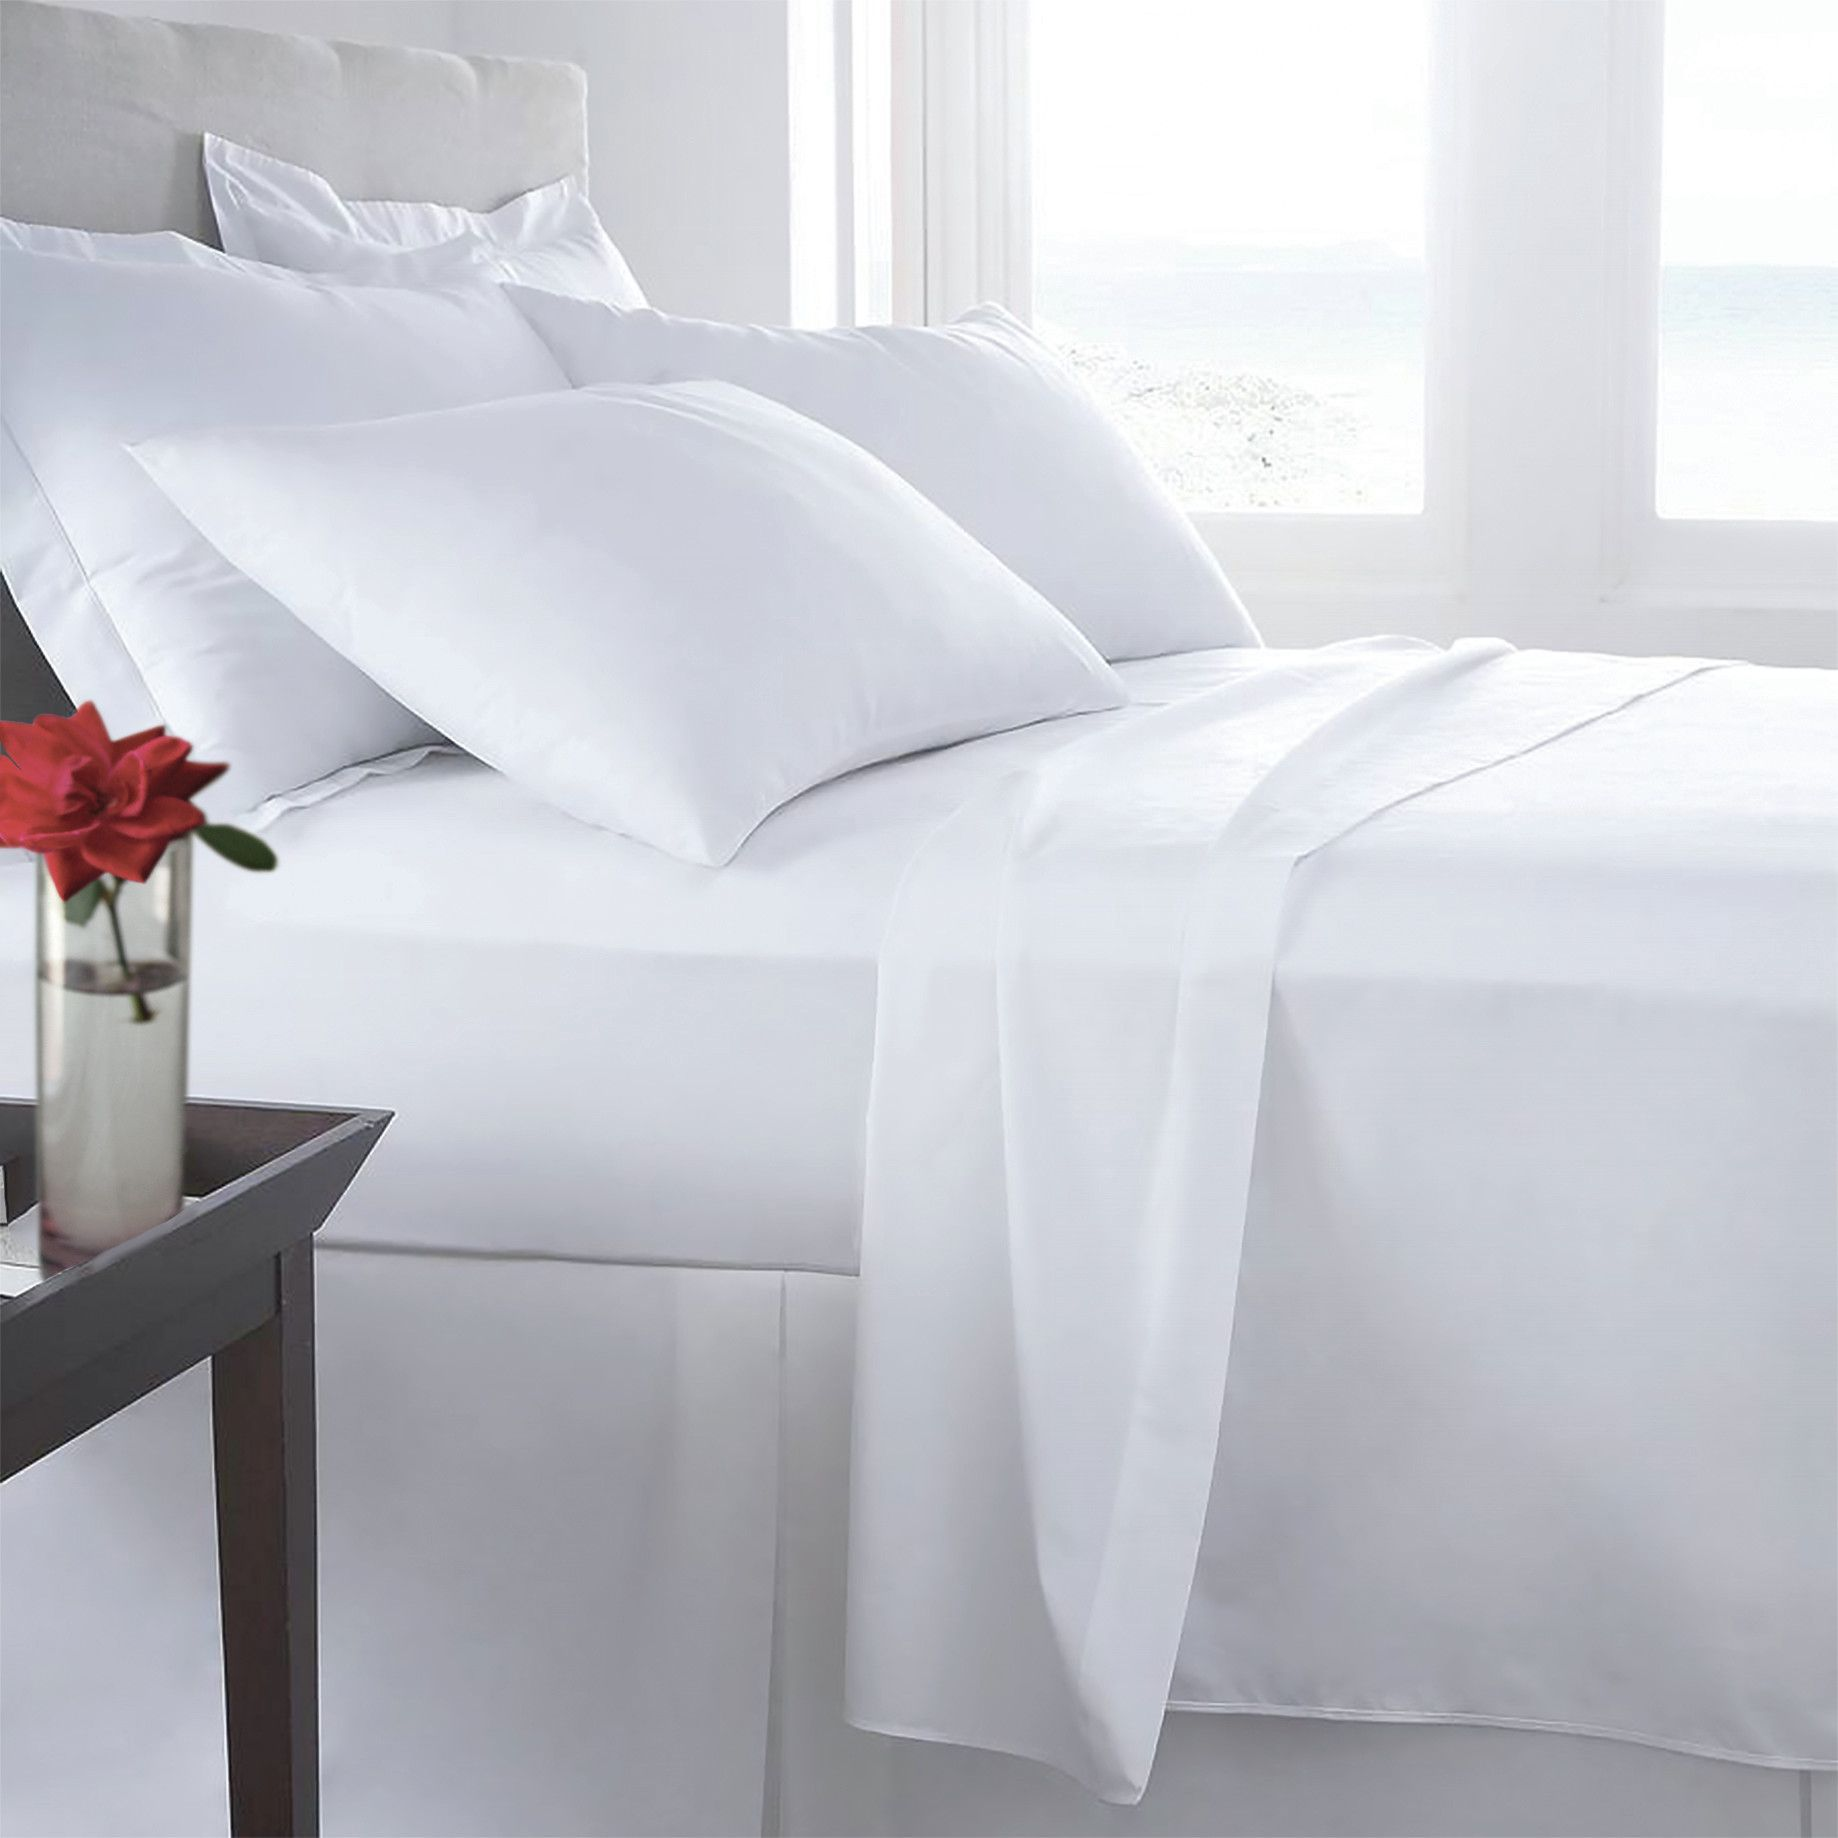 Mandalay thread count sheet set products pinterest count